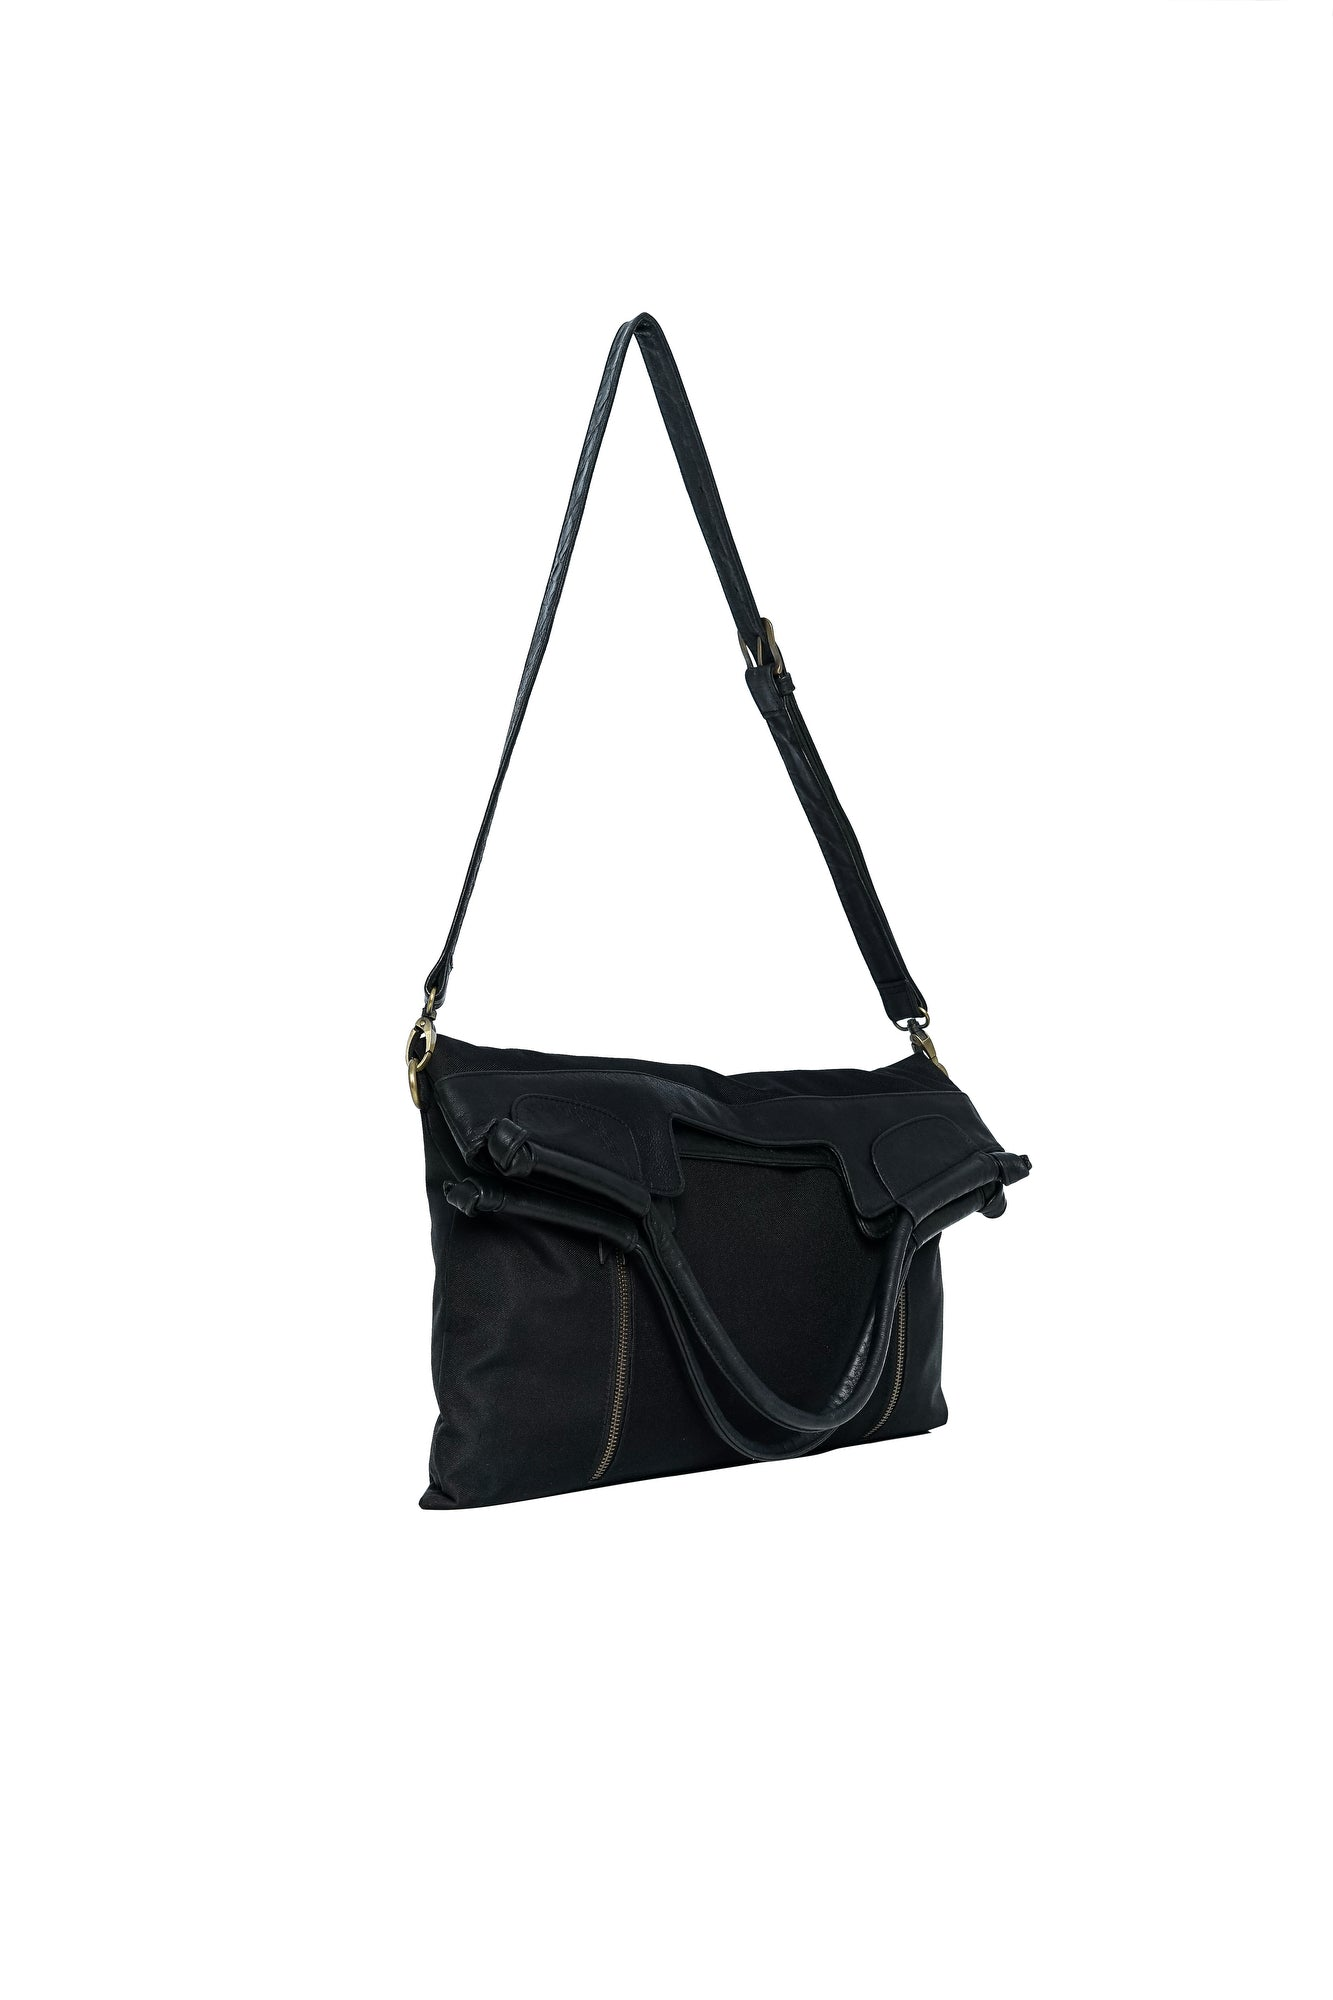 black leather and nylon cross body bag